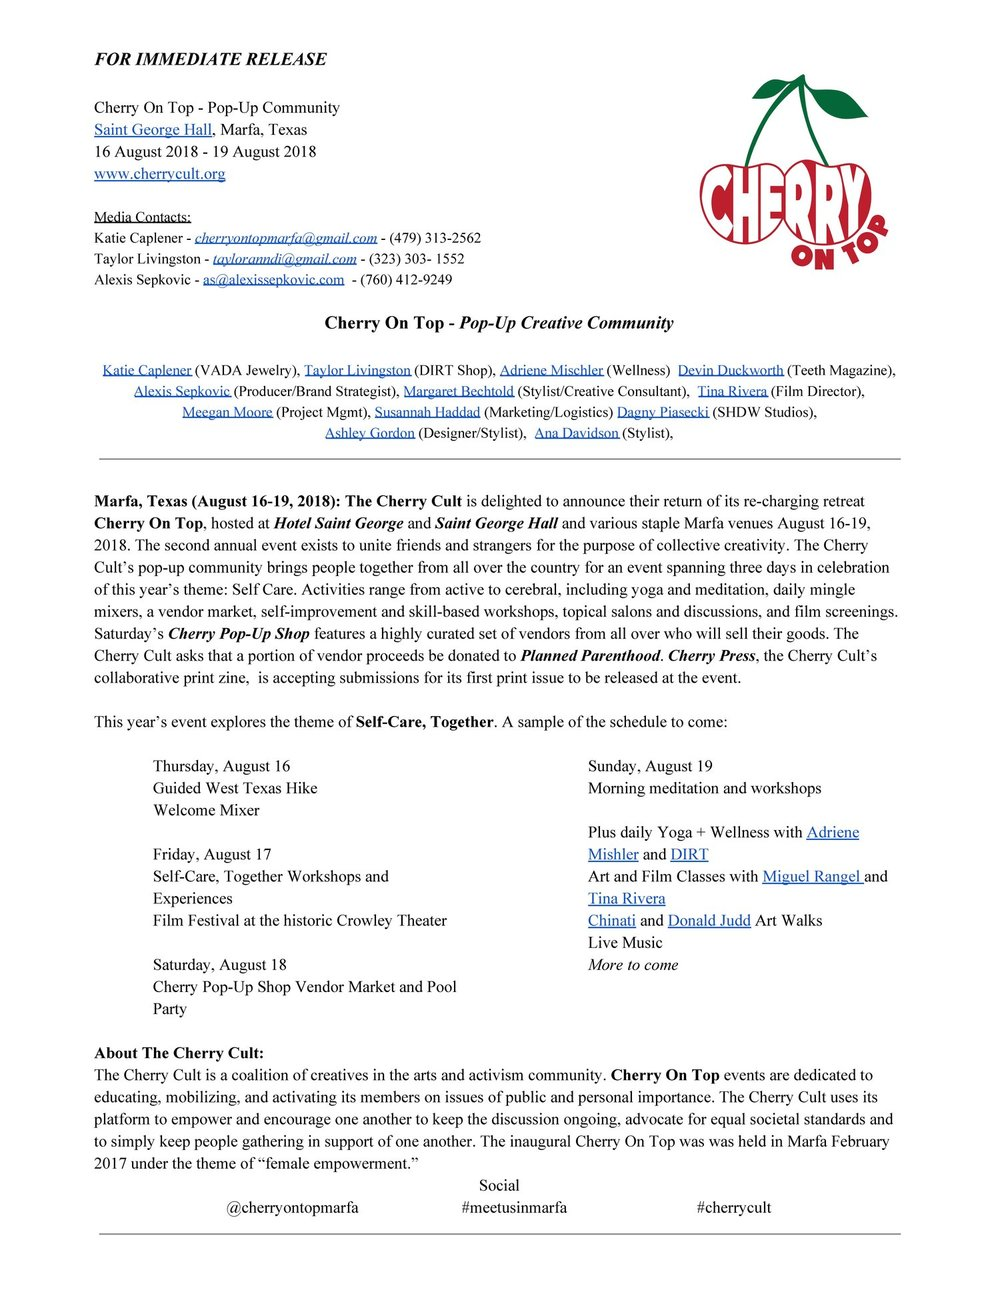 Copy+of+Cherry+On+Top_+PRESS+RELEASE_Page_1-1.jpg